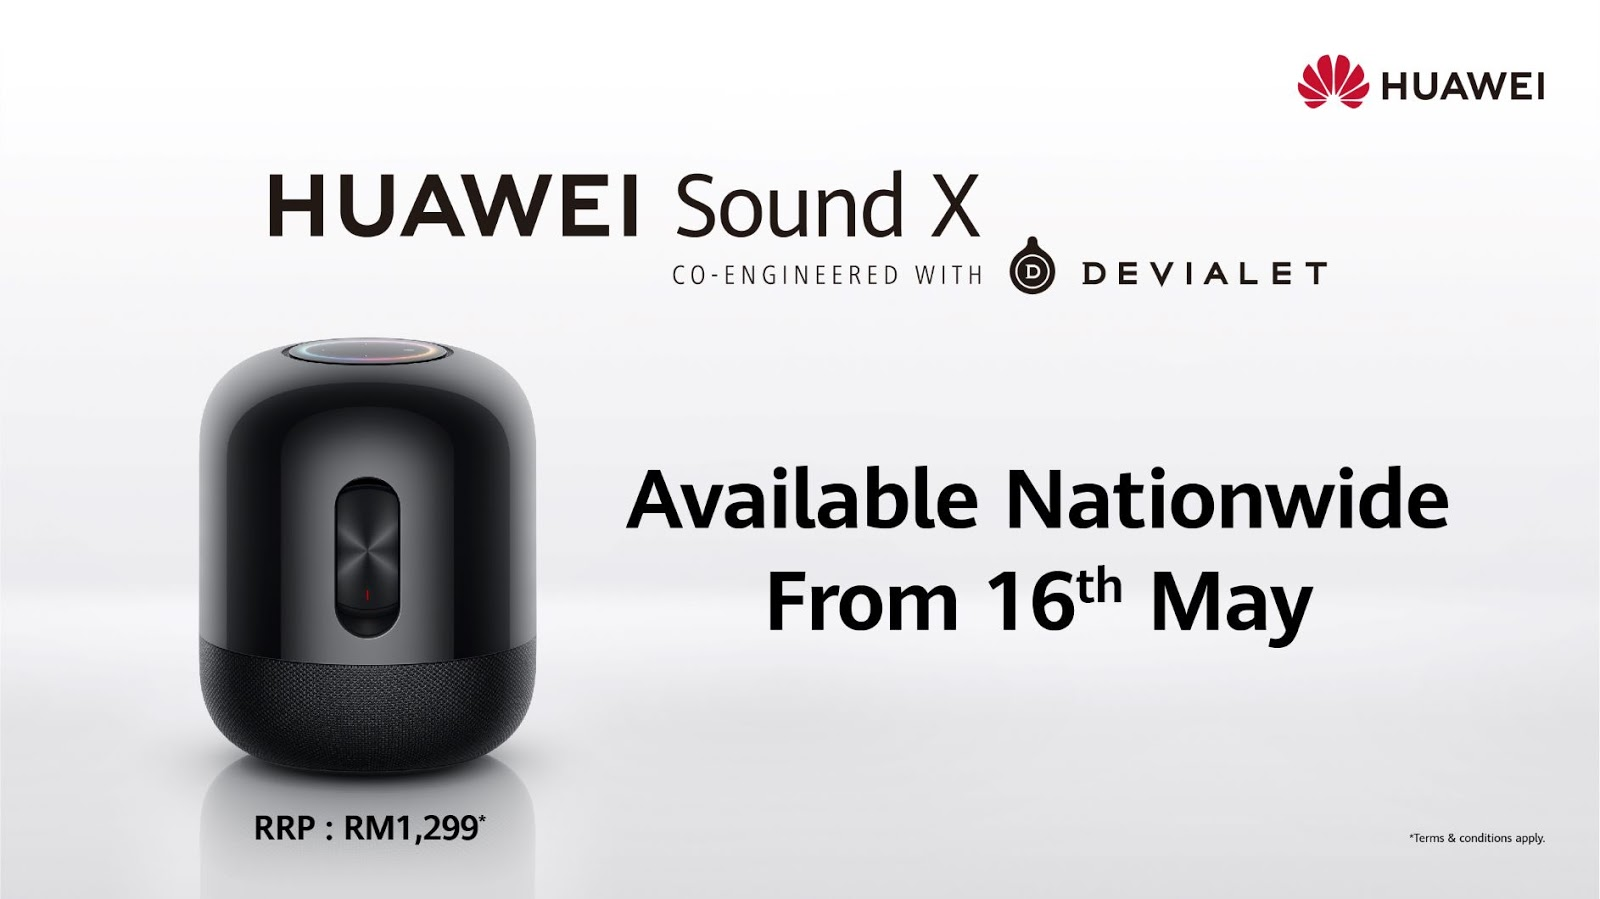 Best about Huawei Sound X